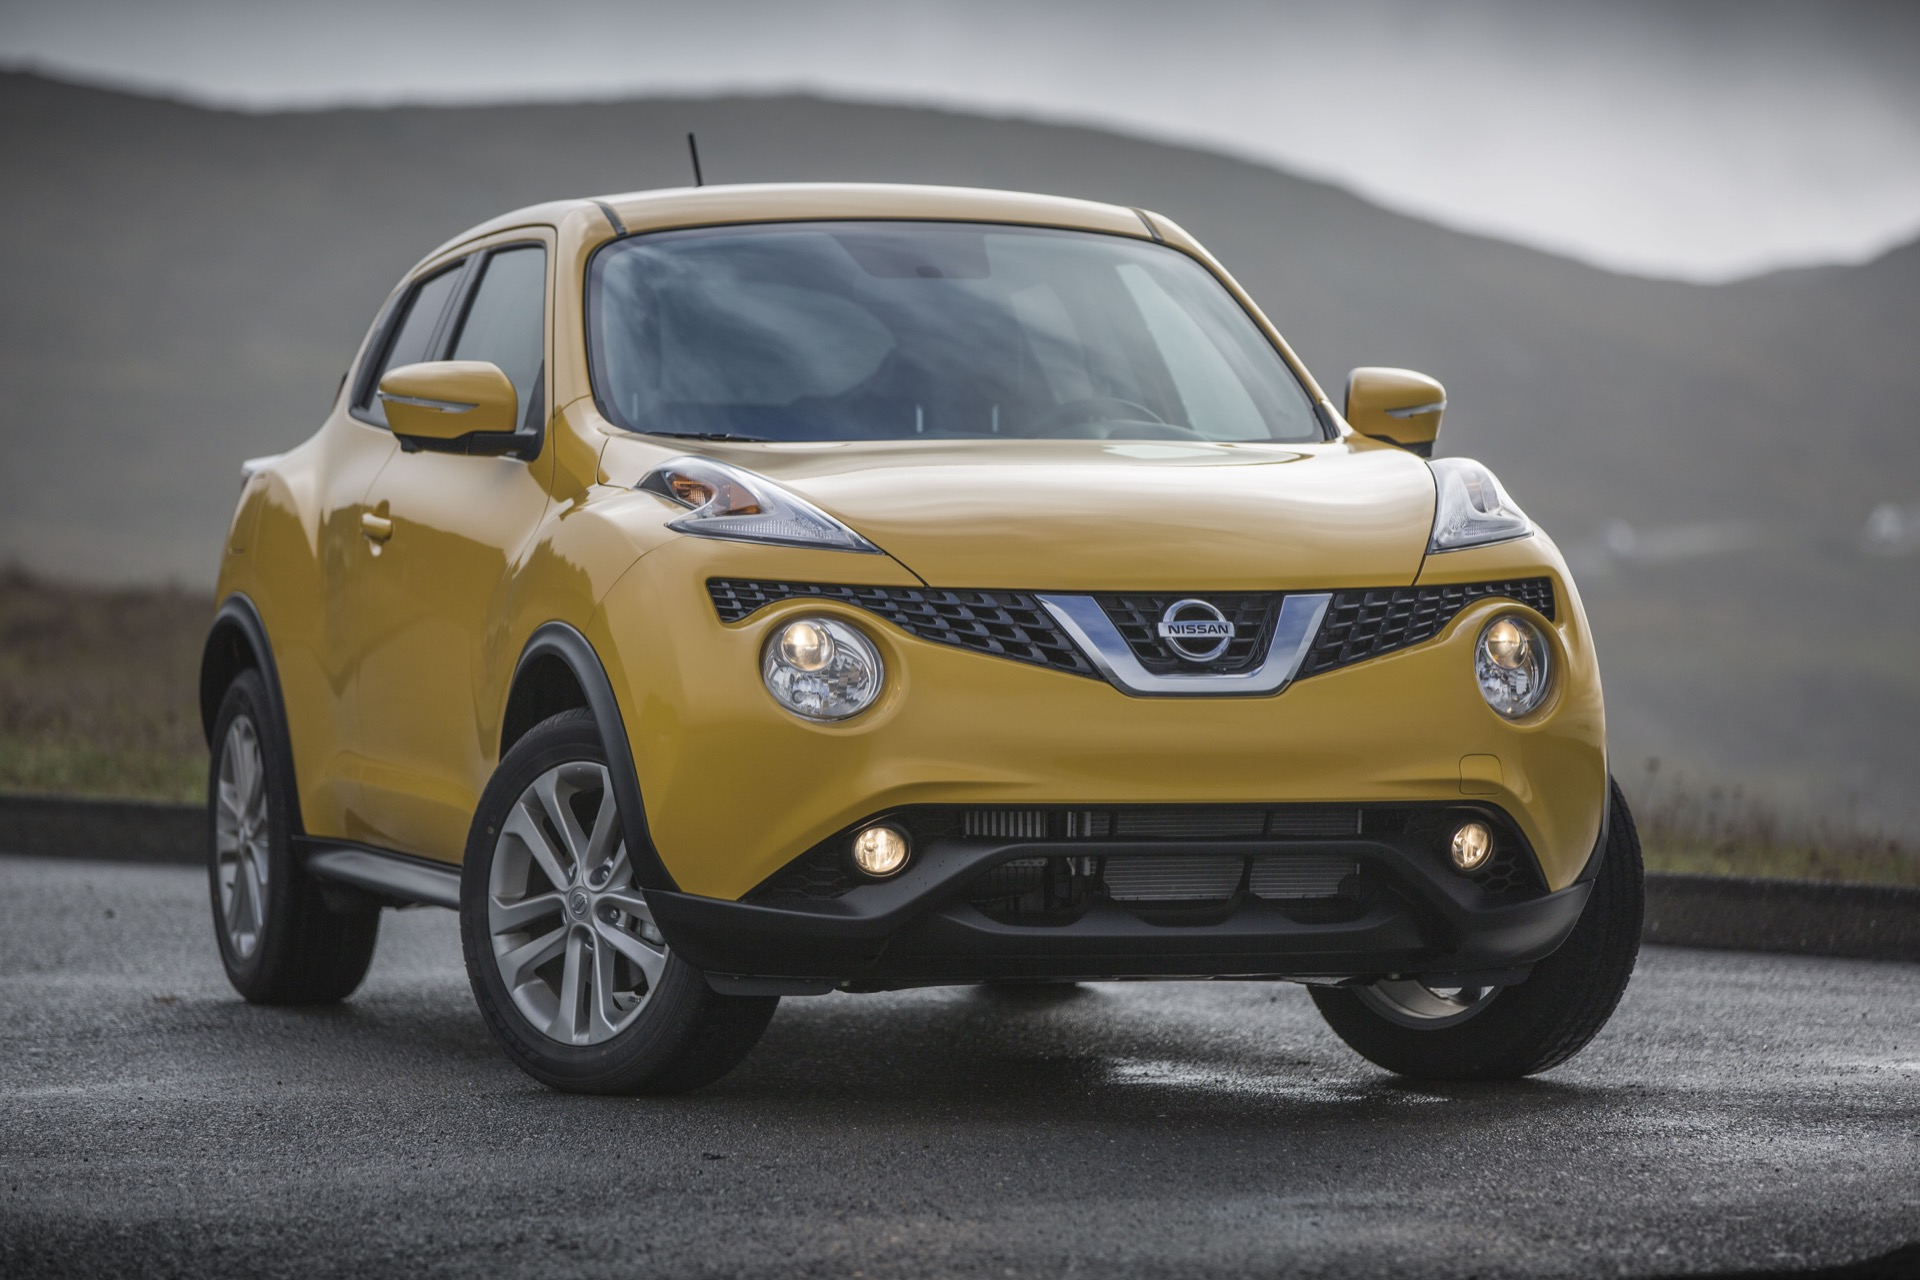 new and used nissan juke prices photos reviews specs the car connection. Black Bedroom Furniture Sets. Home Design Ideas